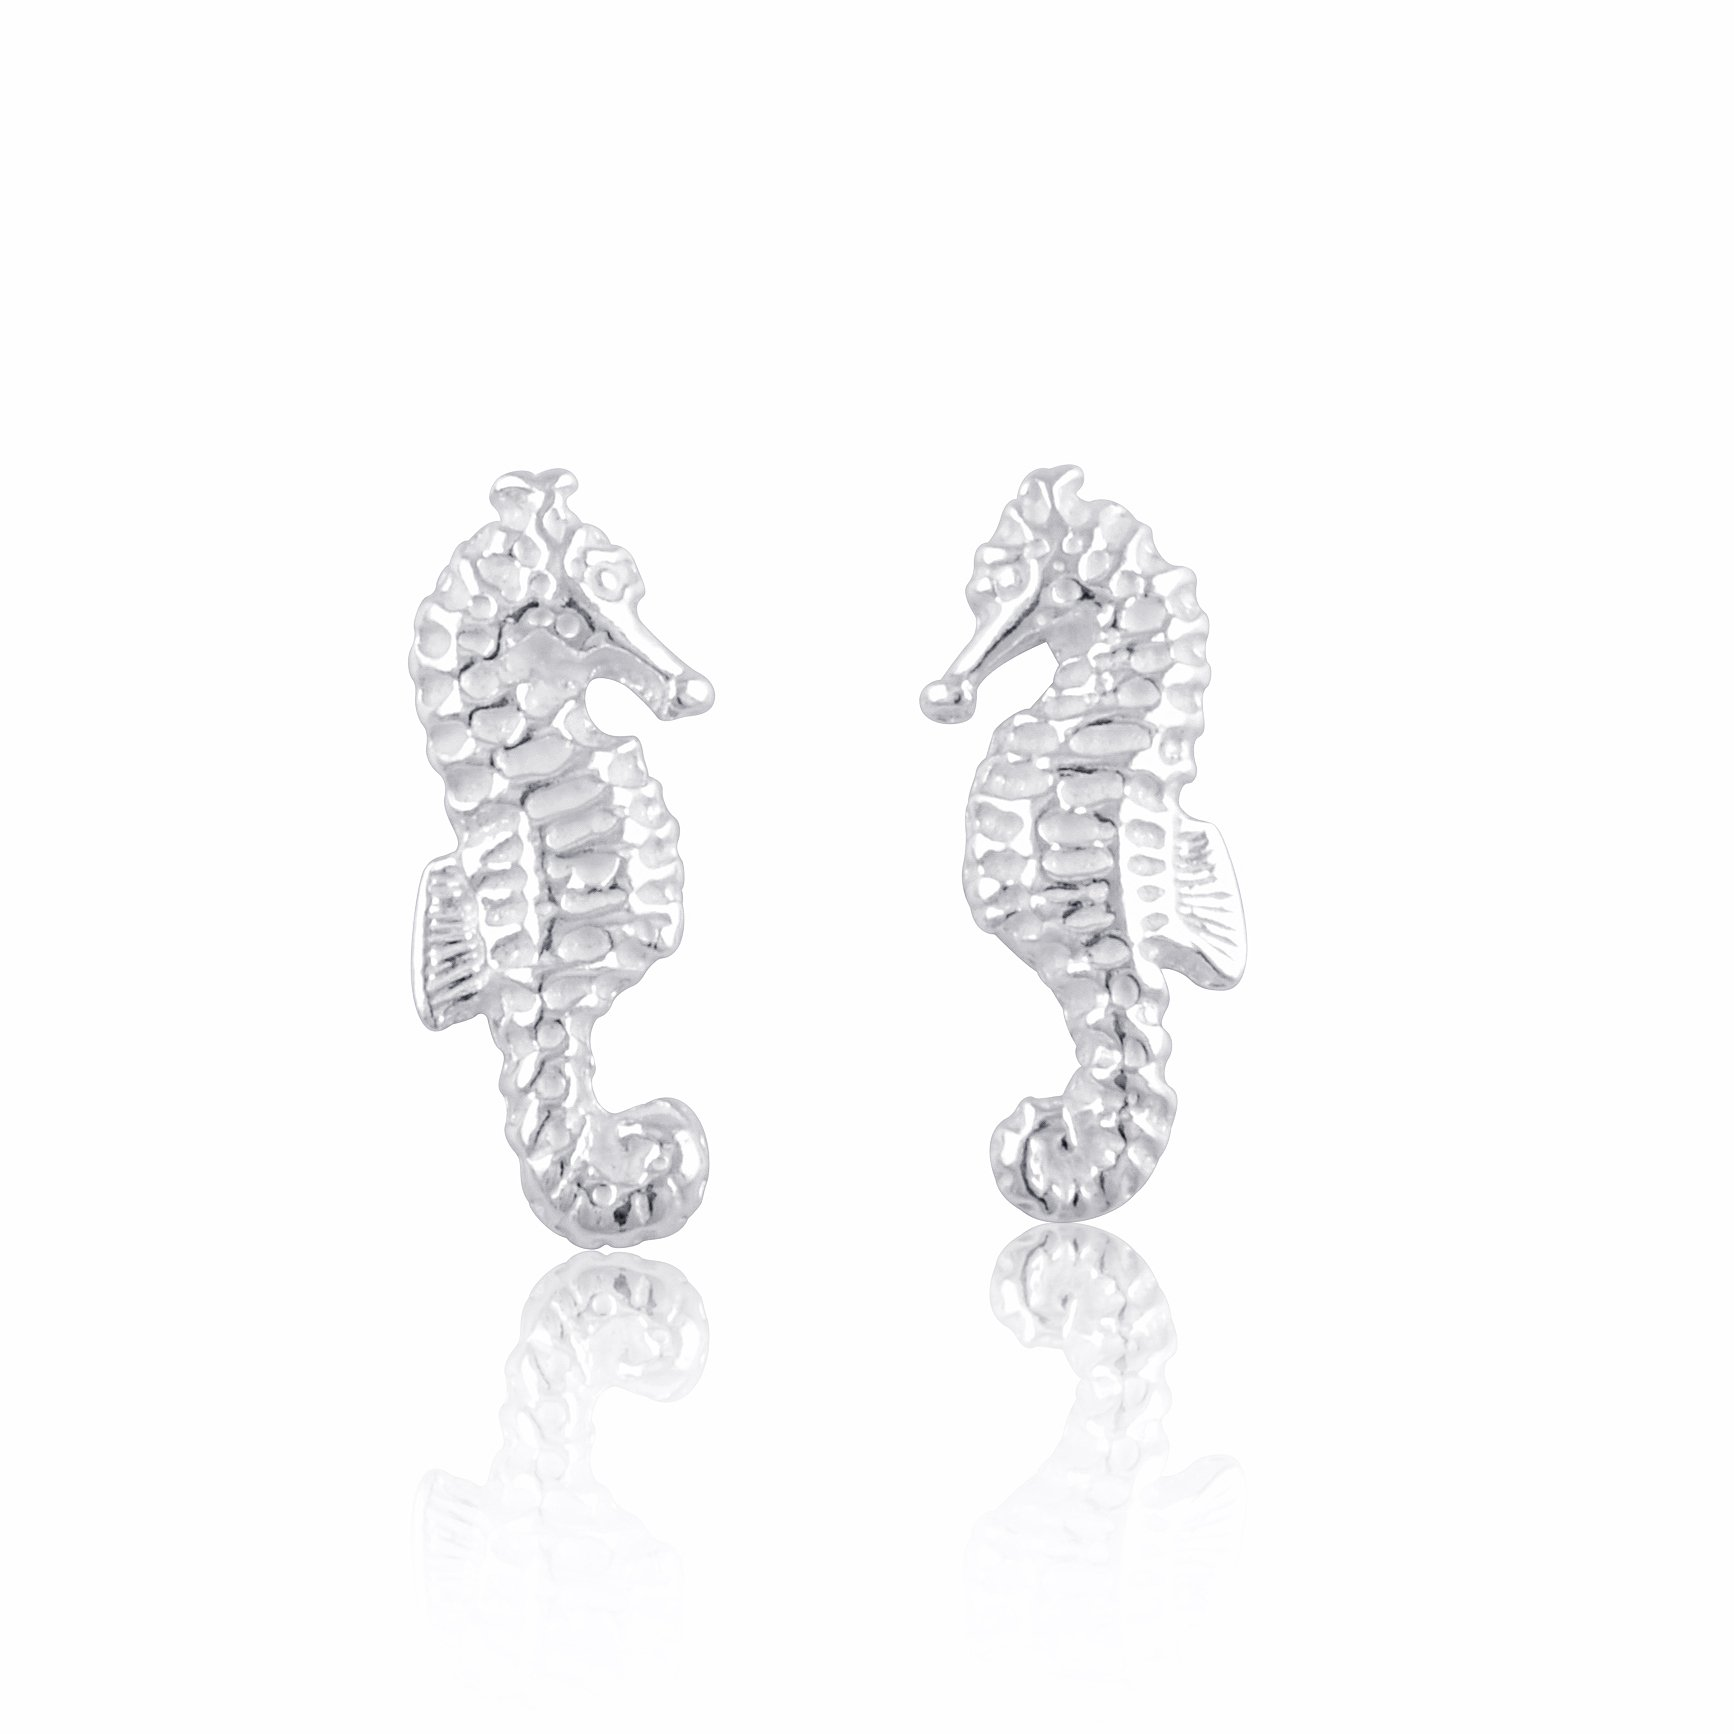 Sterling Silver Small SeaHorse Stud Earrings 12mm